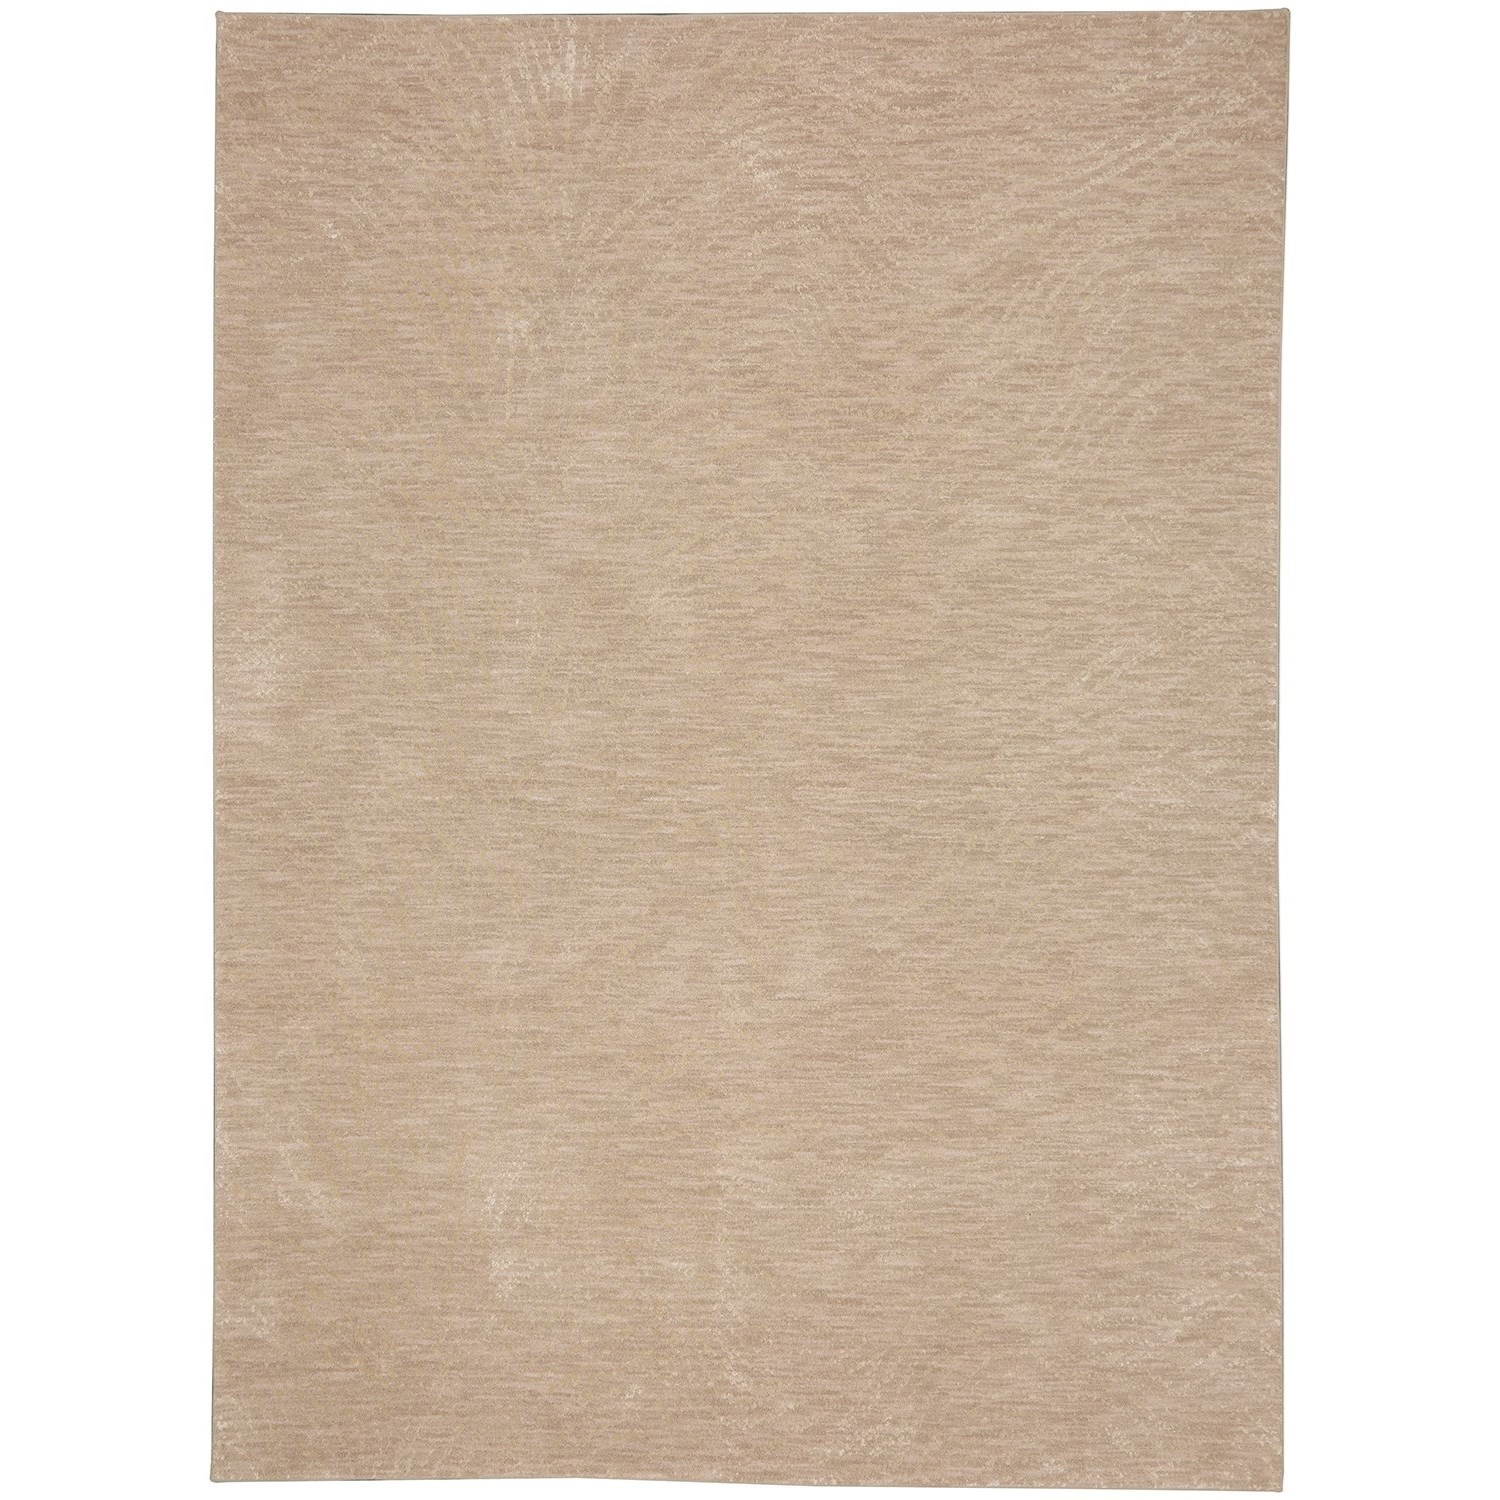 Enigma 8'x11' Rectangle Animal Print Area Rug by Karastan Rugs at Darvin Furniture